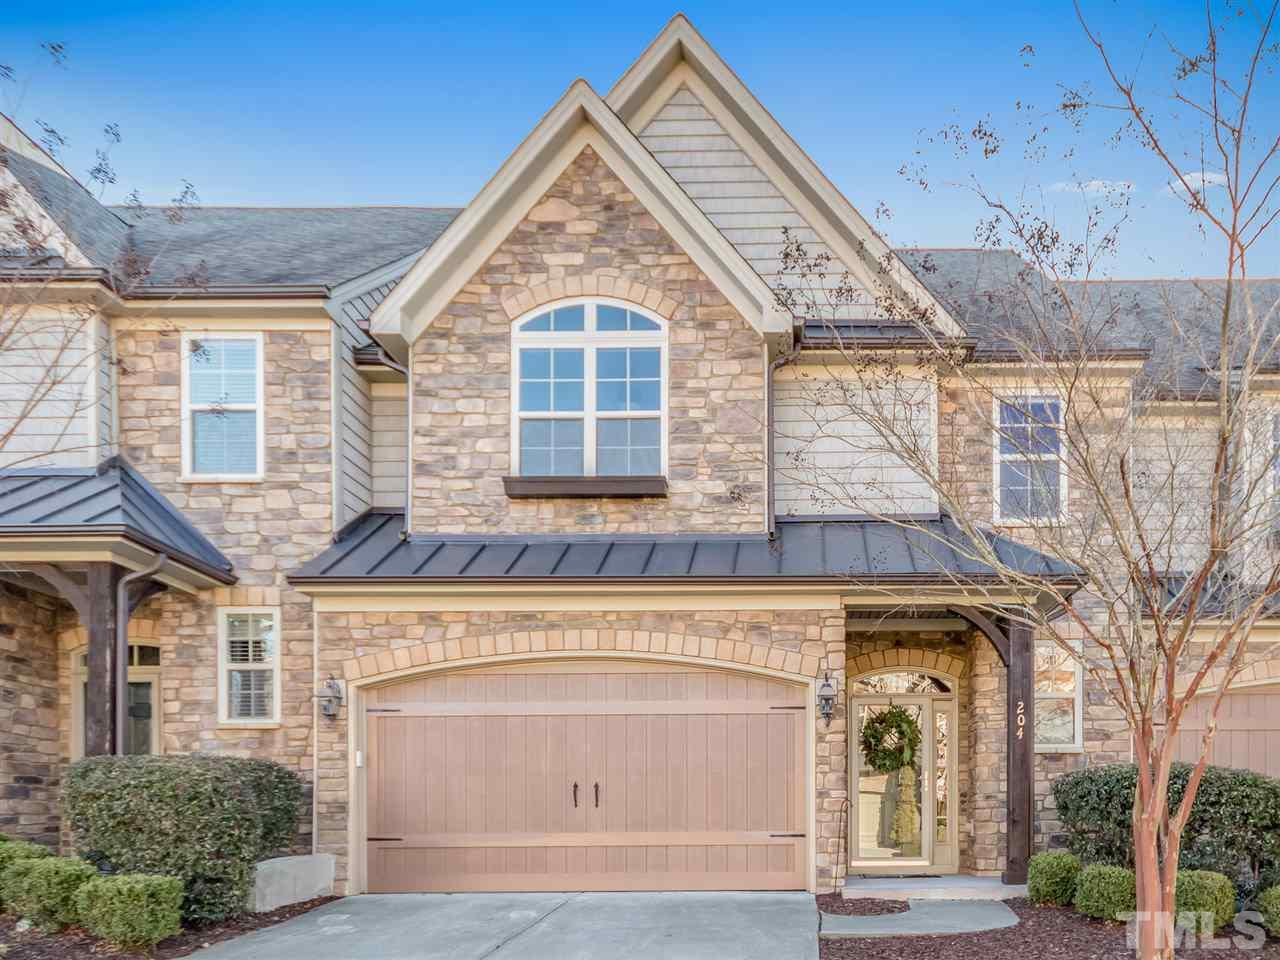 Stone Creek Village Townhomes for sale Cary NC via CaryRealEstate.com